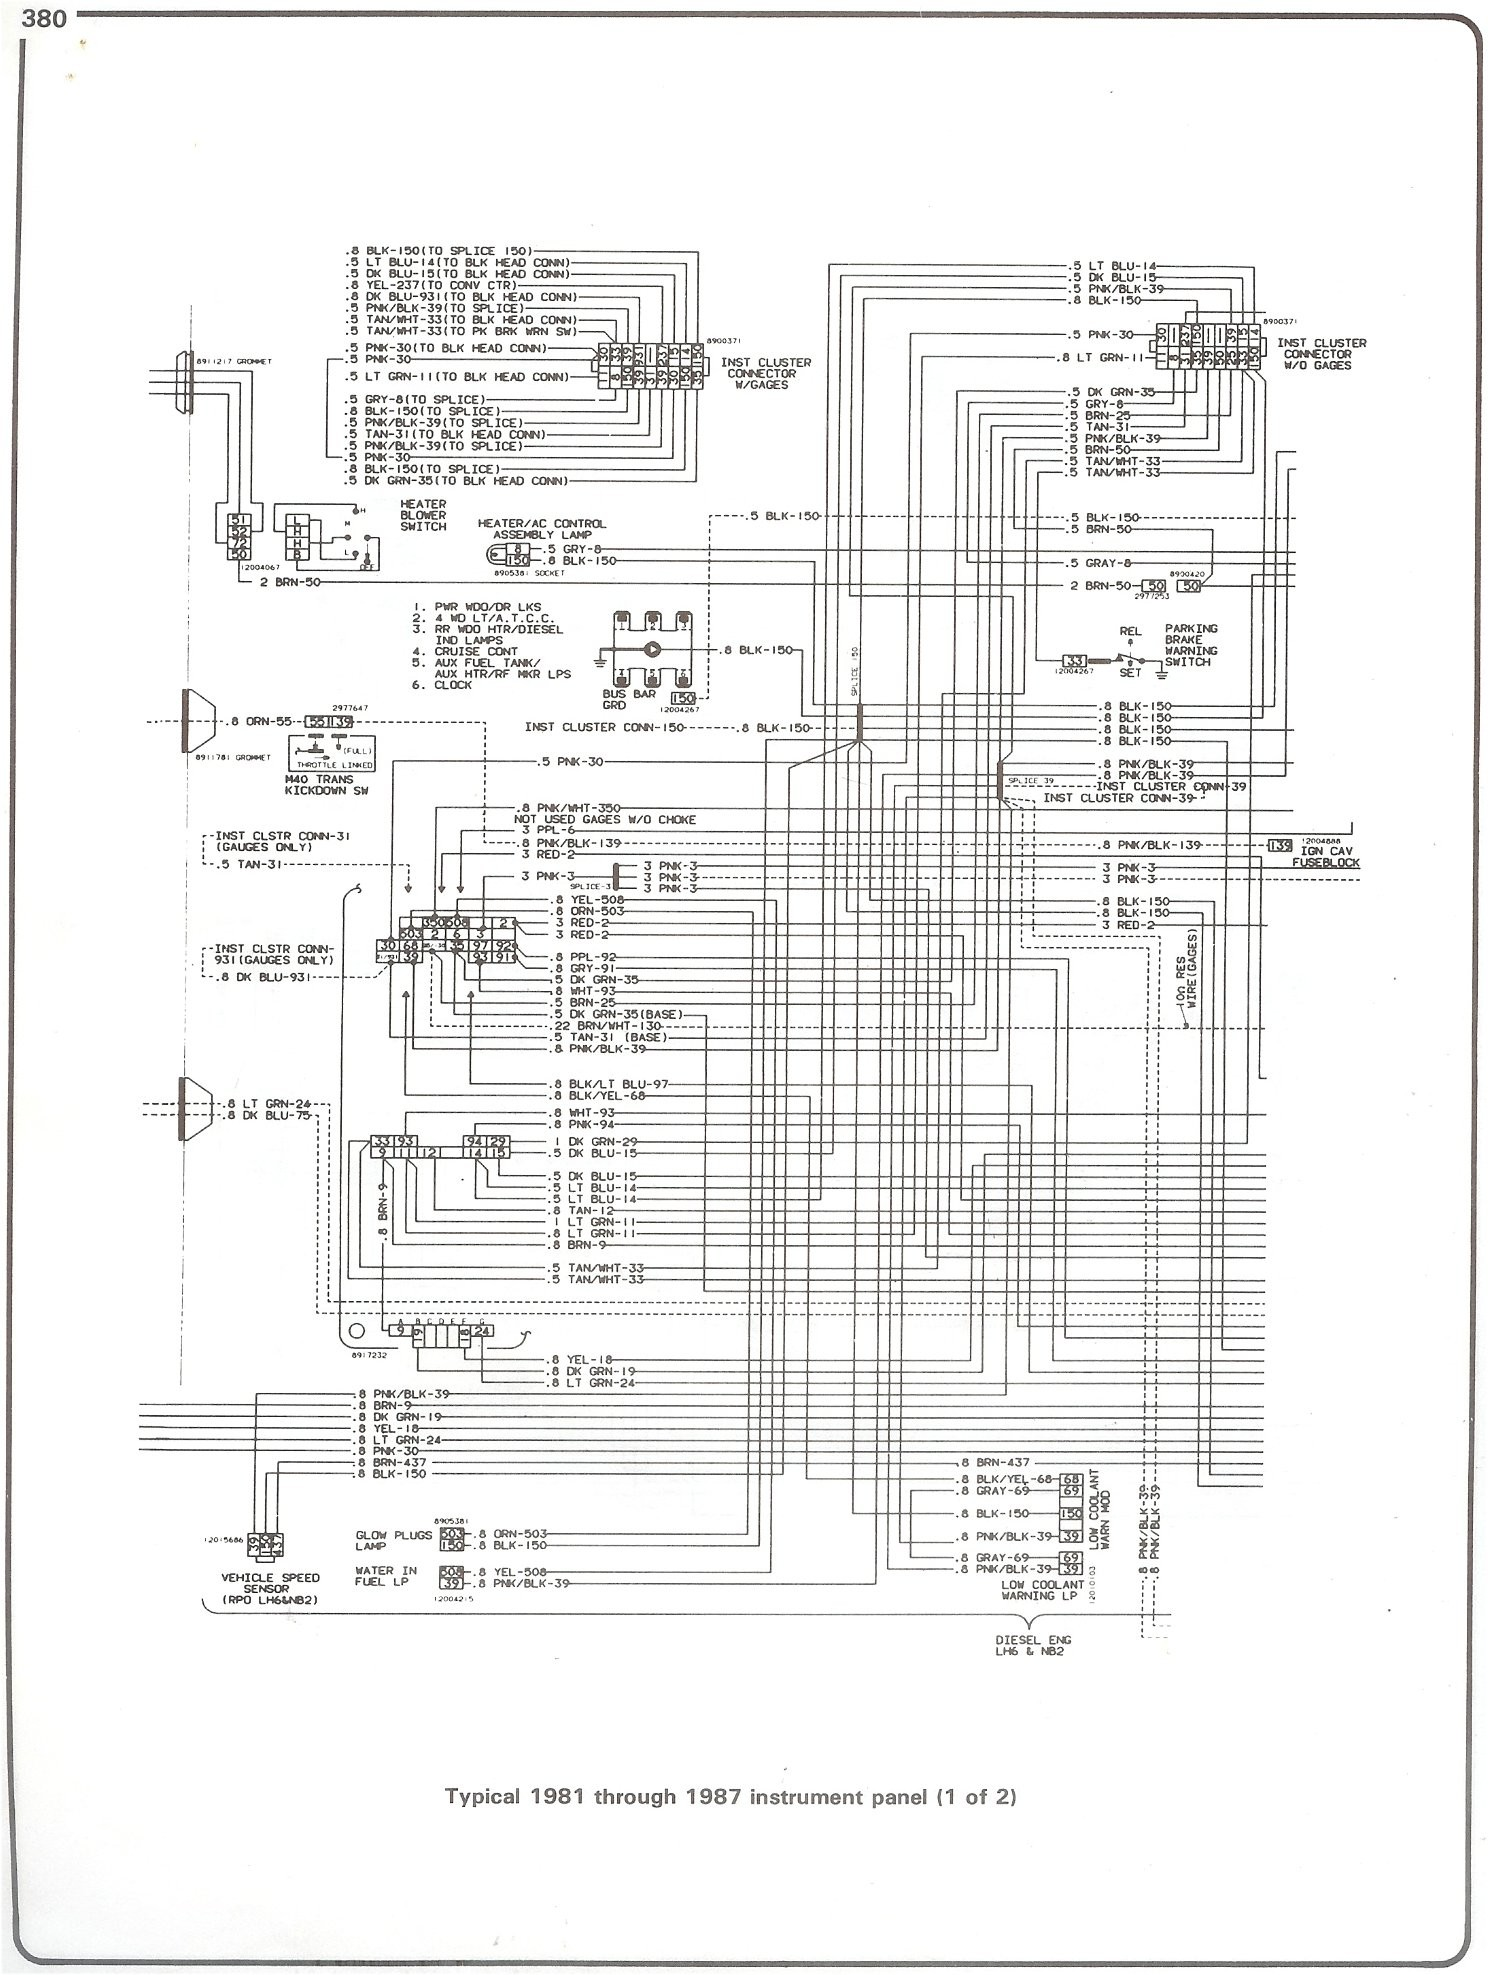 1997 Chevrolet Blazer Wiring Diagram Detailed Schematics 2000 Chevy Trailblazer 1984 Alternator 1977